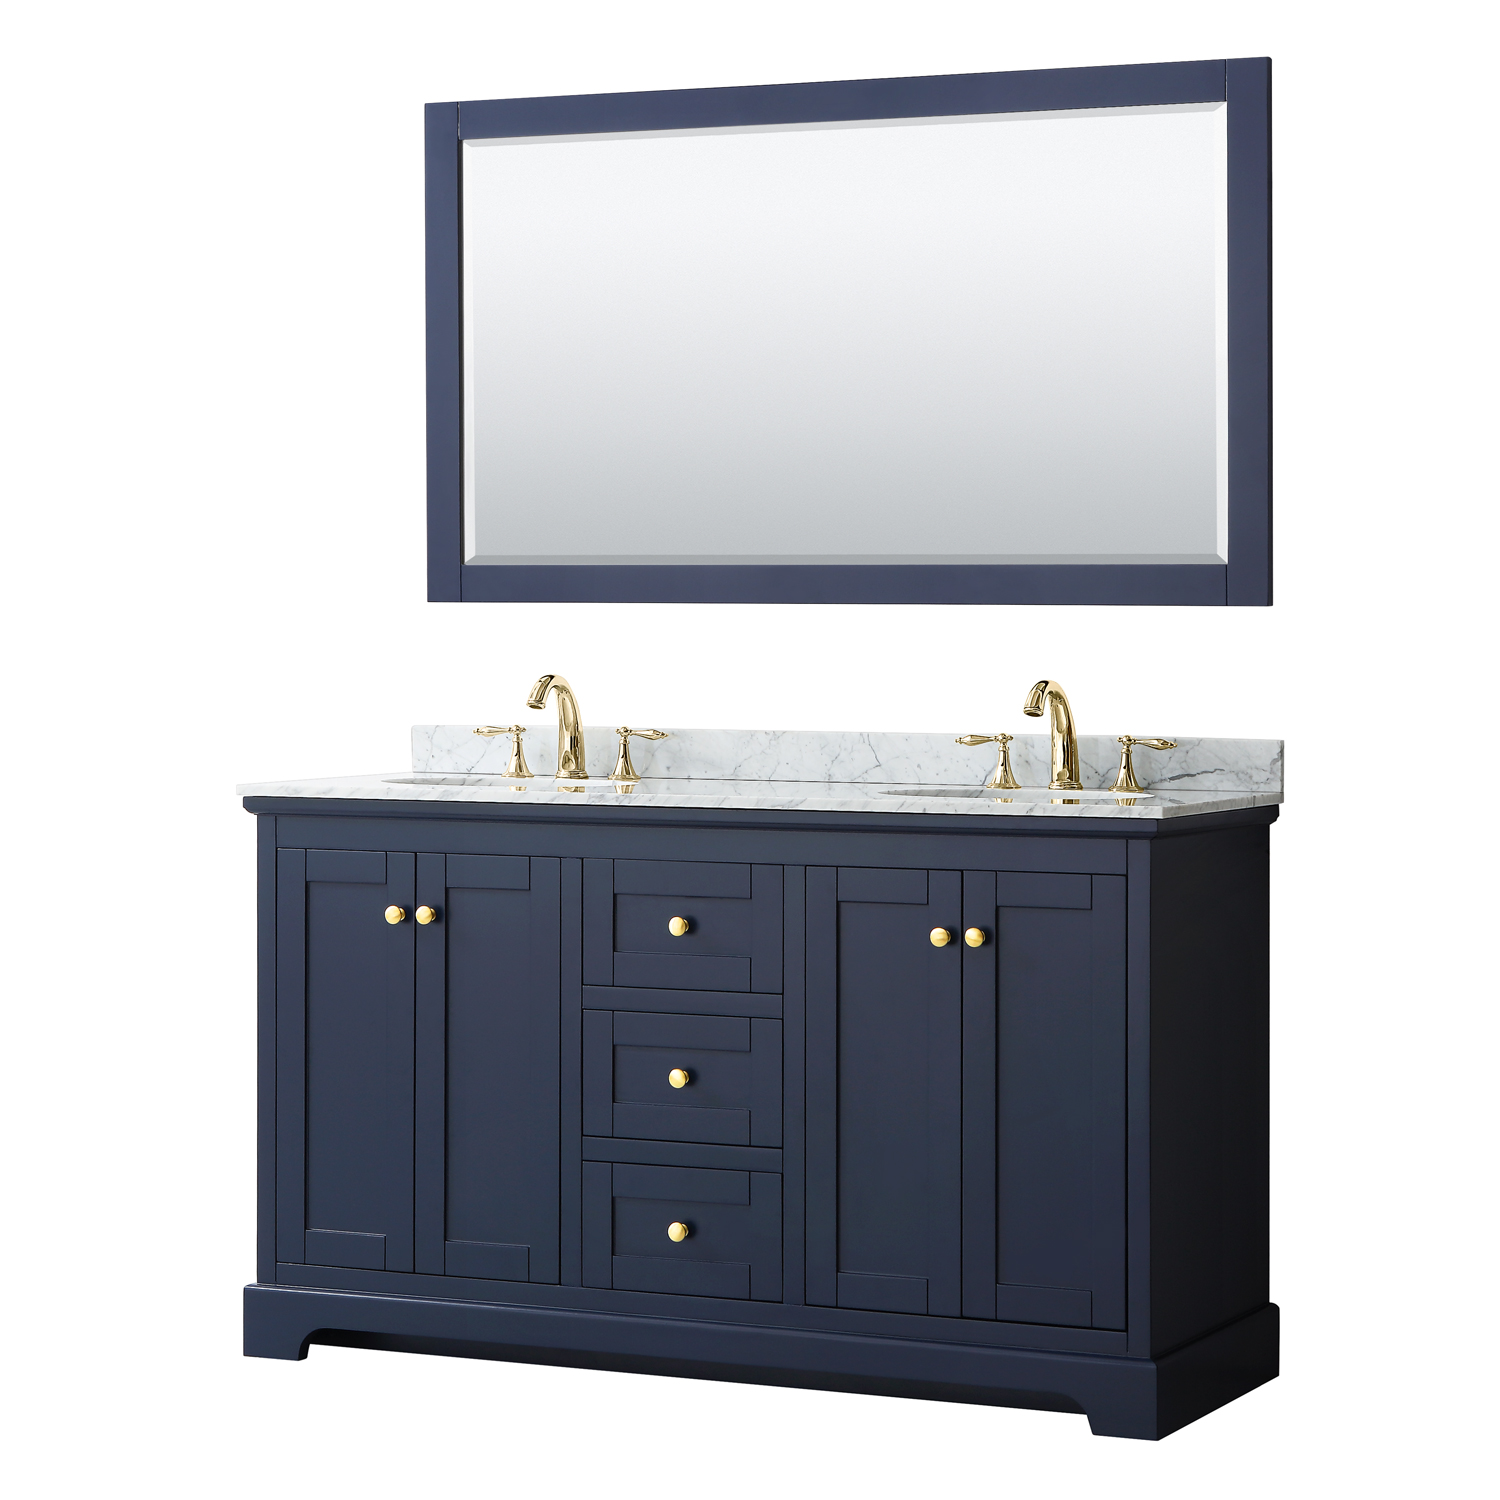 Avery 60 Double Bathroom Vanity By Wyndham Collection Dark Blue